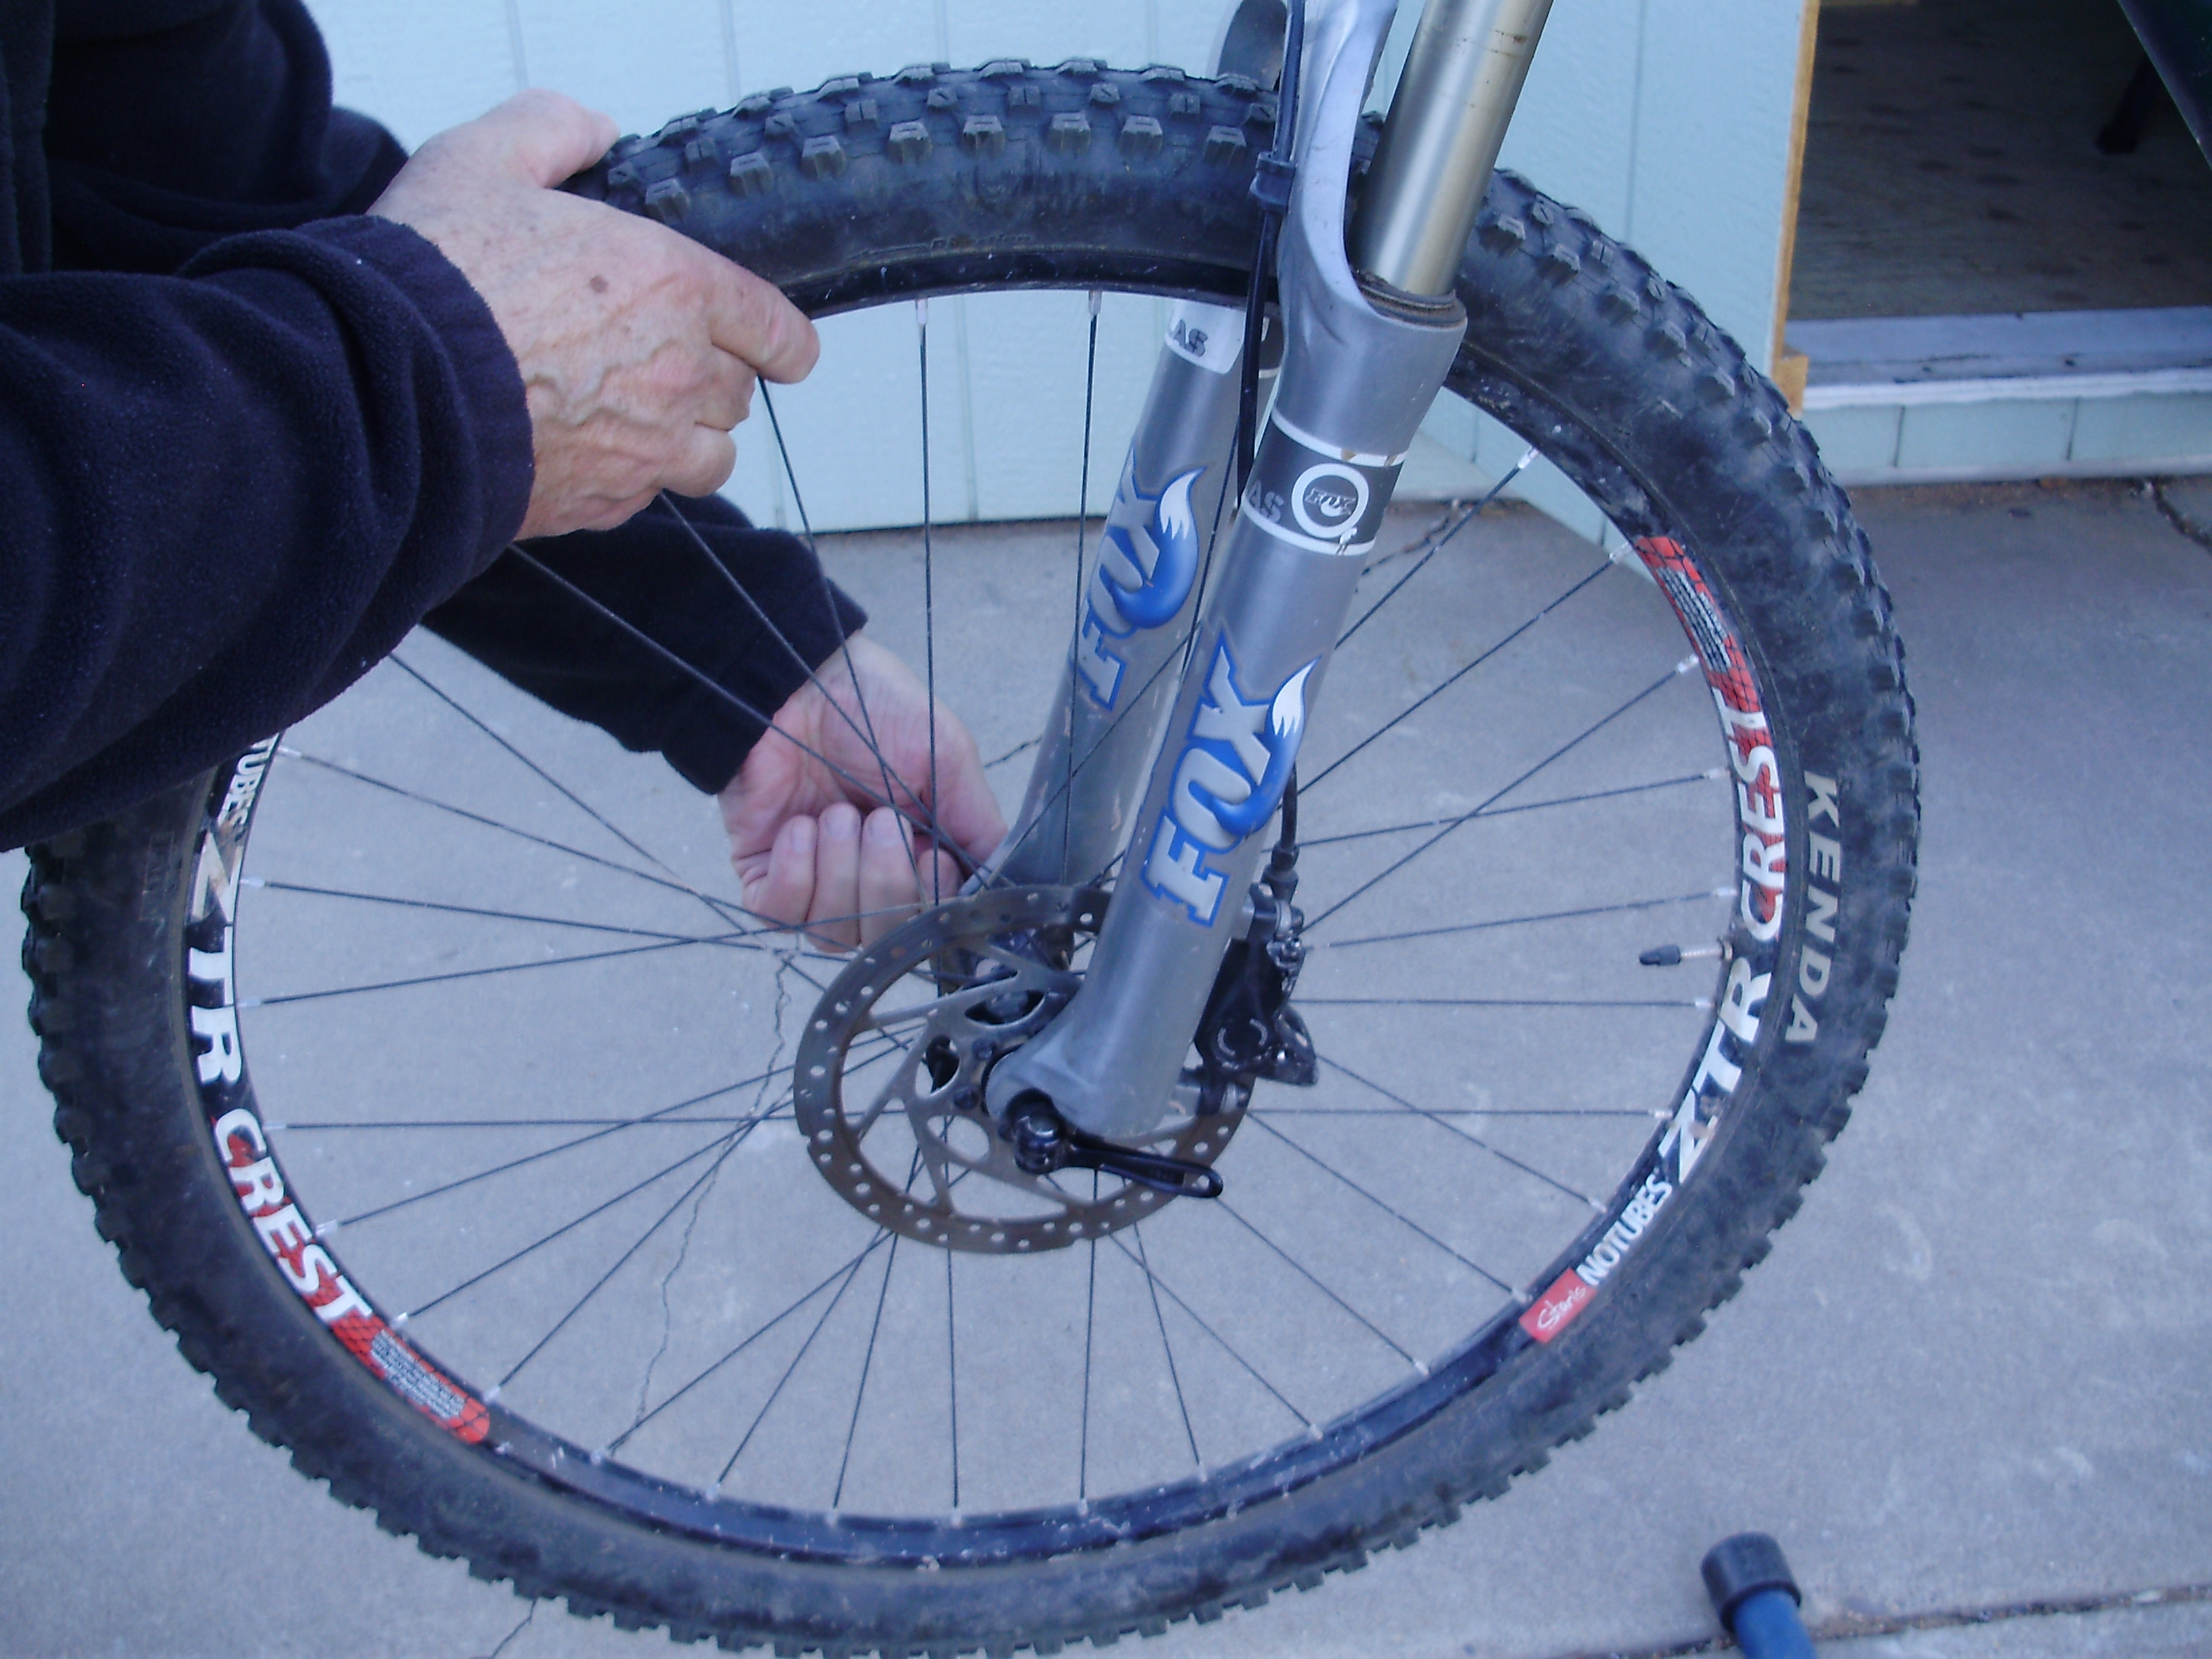 Disc brakes on the bike. Installation, replacement of disc brakes 57